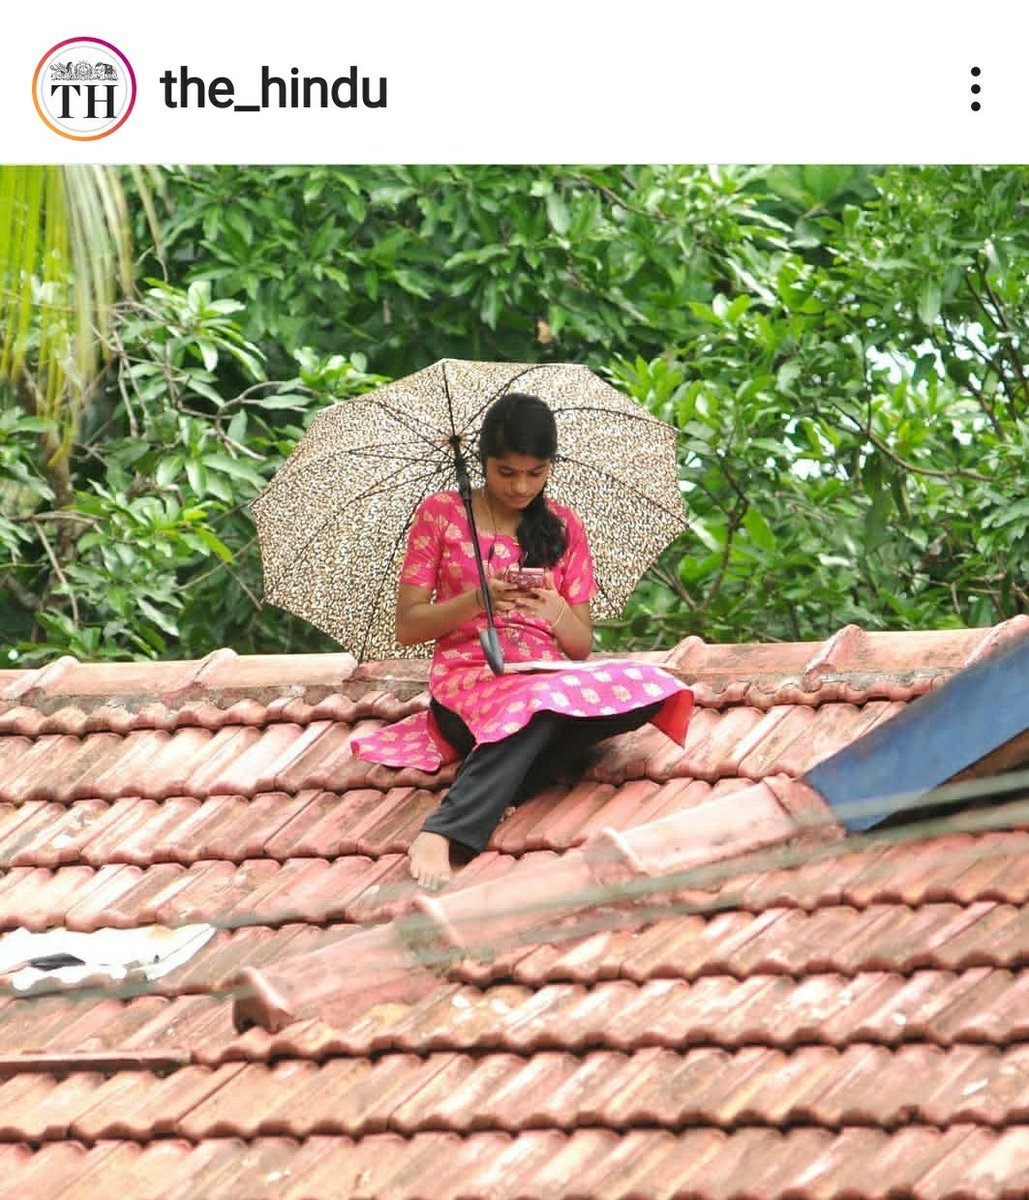 A student of Fifth Semester English, in Areekkal, Kerala, sits on the roof of her house, the only place with fairly good signal strength for mobile data, attending classes online. Photo courtesy: Sakkir Hussain, The Hindu.